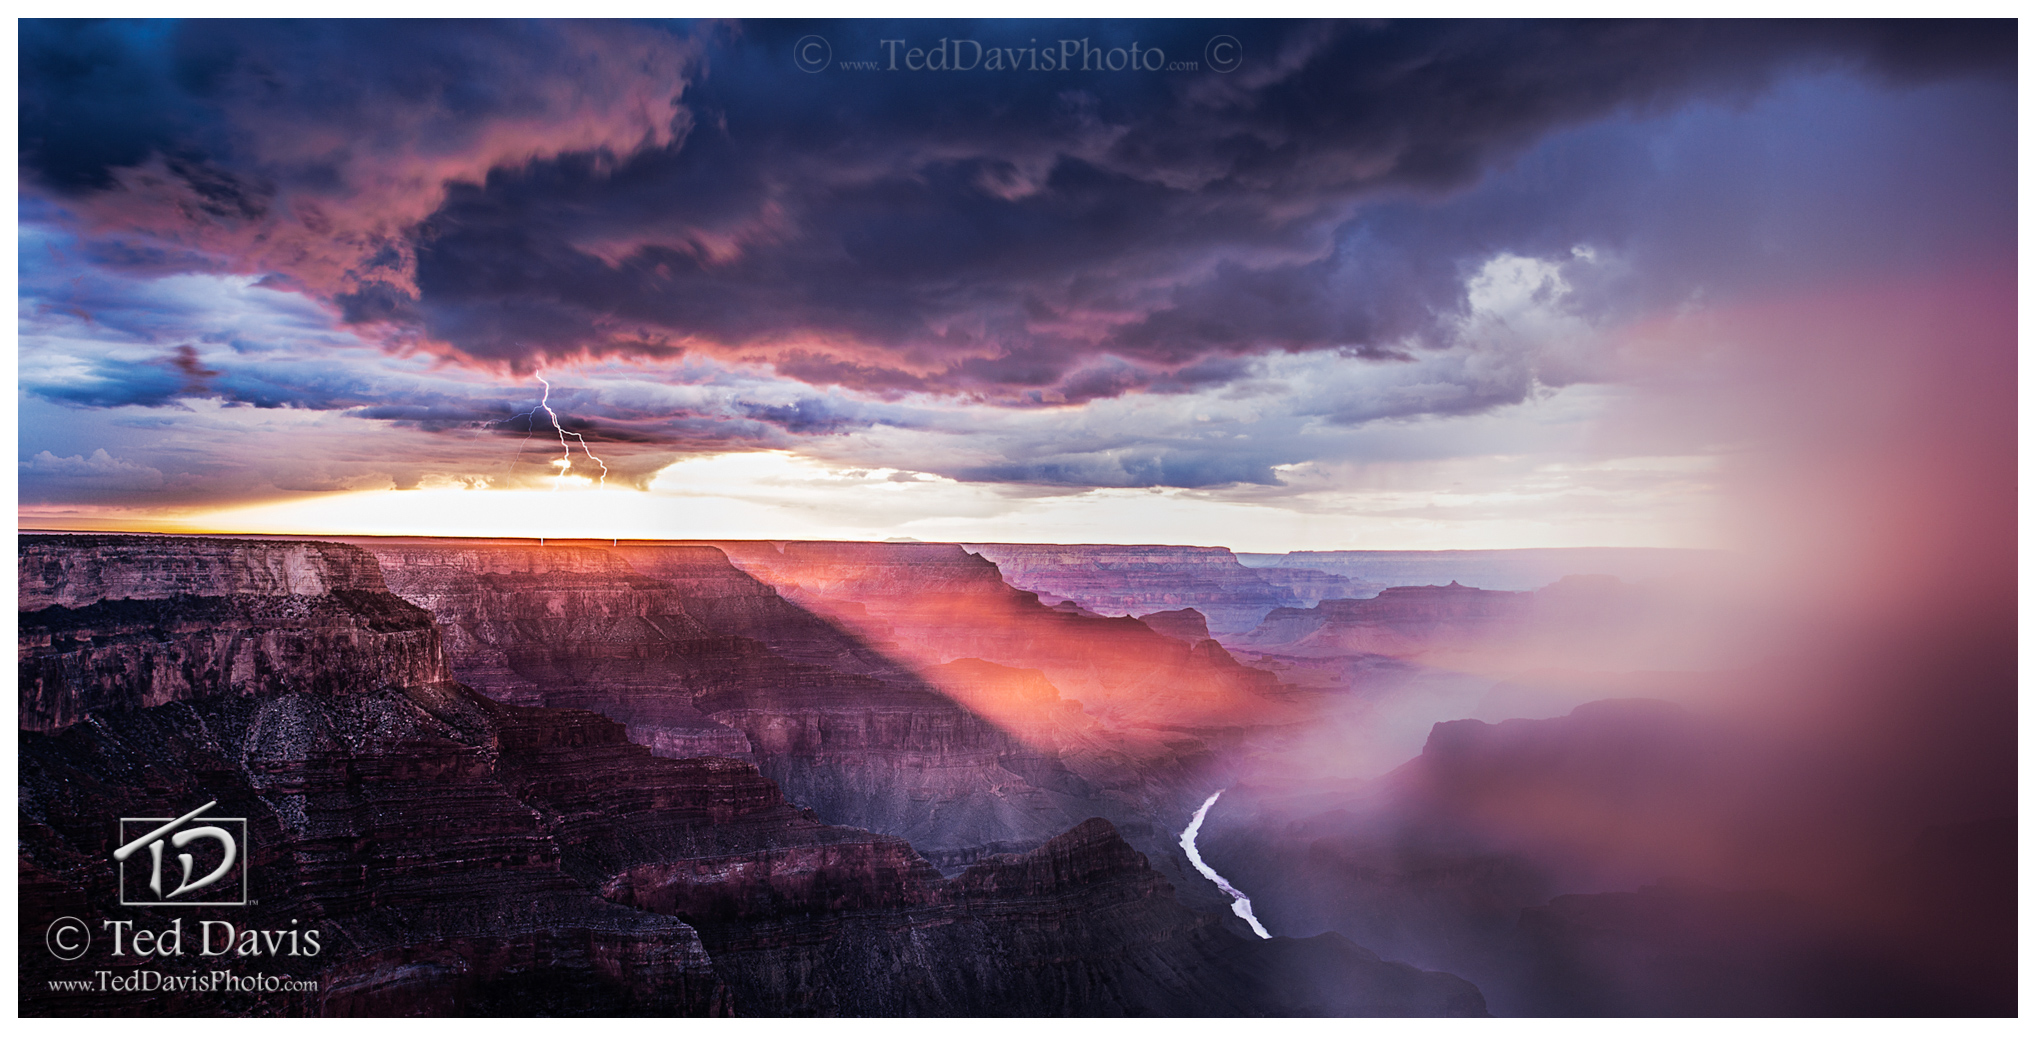 lightning, grand, canyon, arizona, thunderstorm, South Rim, Rim, Rain, walls, Colorado, River, Danger, sun, setting sun, sunset, clouds, rays, cutting, Mother nature, powerful, photo